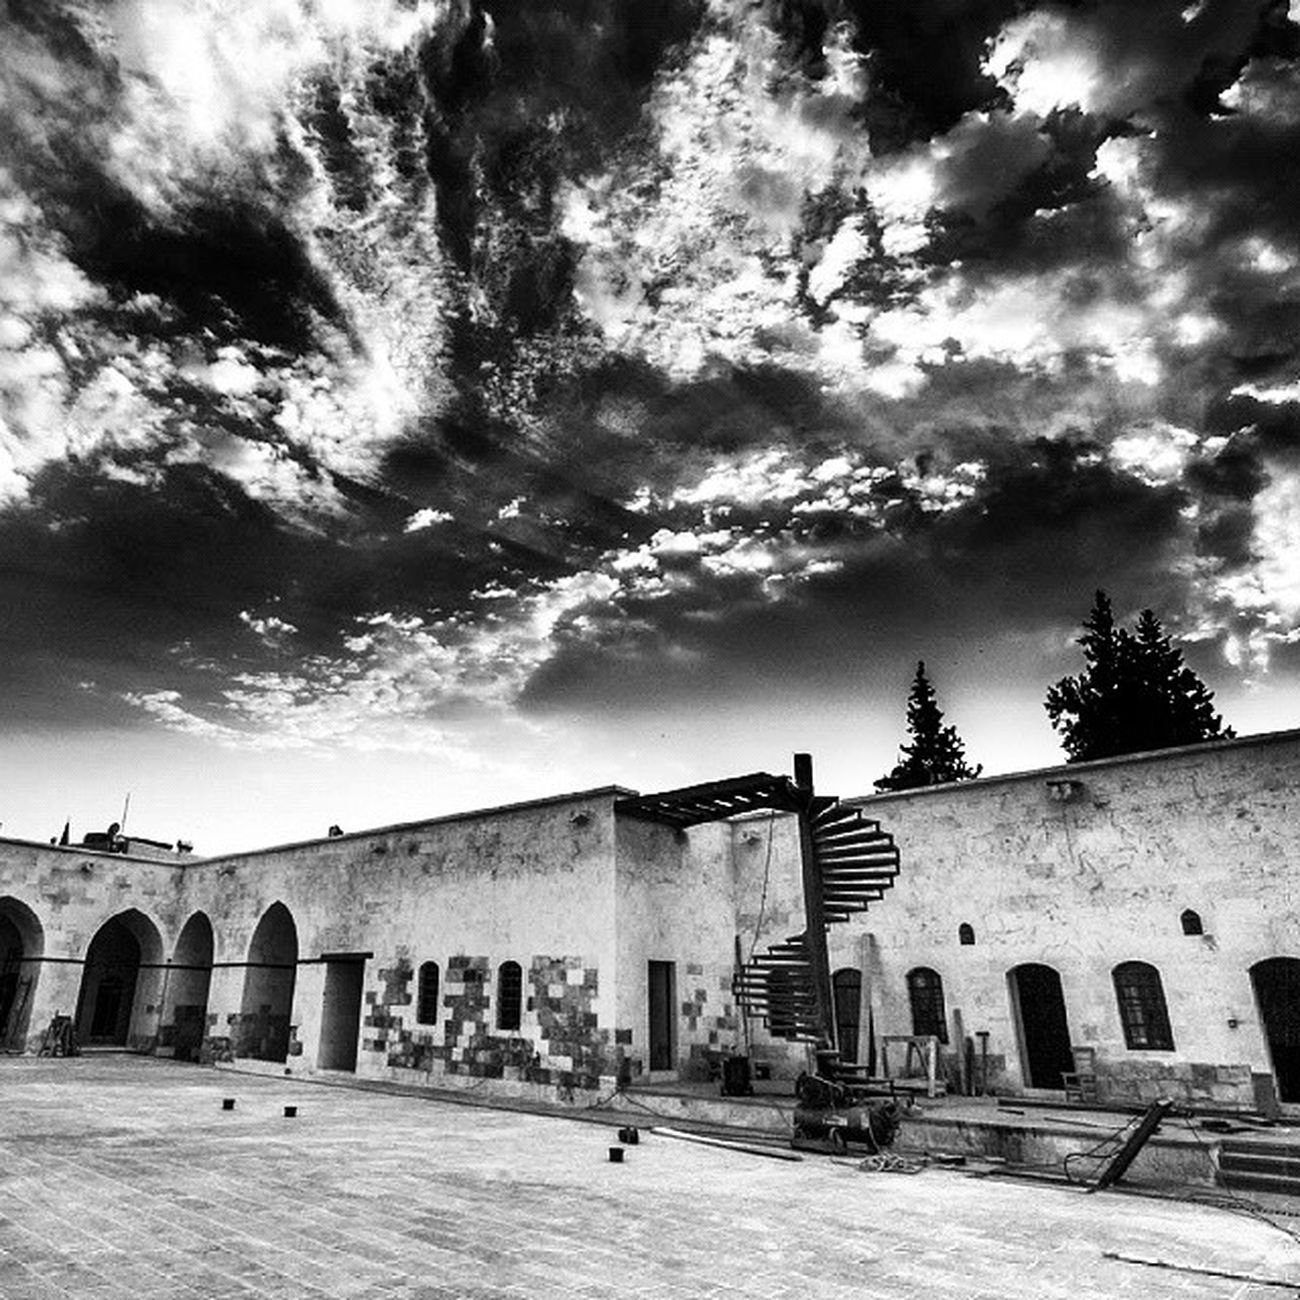 Gaziantep Hışva Han Blackandwhite bnw monochrome instablackandwhite sky monoart insta_bw bnw_society bw_lover bw_photooftheday photooftheday bw instagood bwstyleoftheday monotone monochromaticnoir fineart_photobw f69 nadirozkan